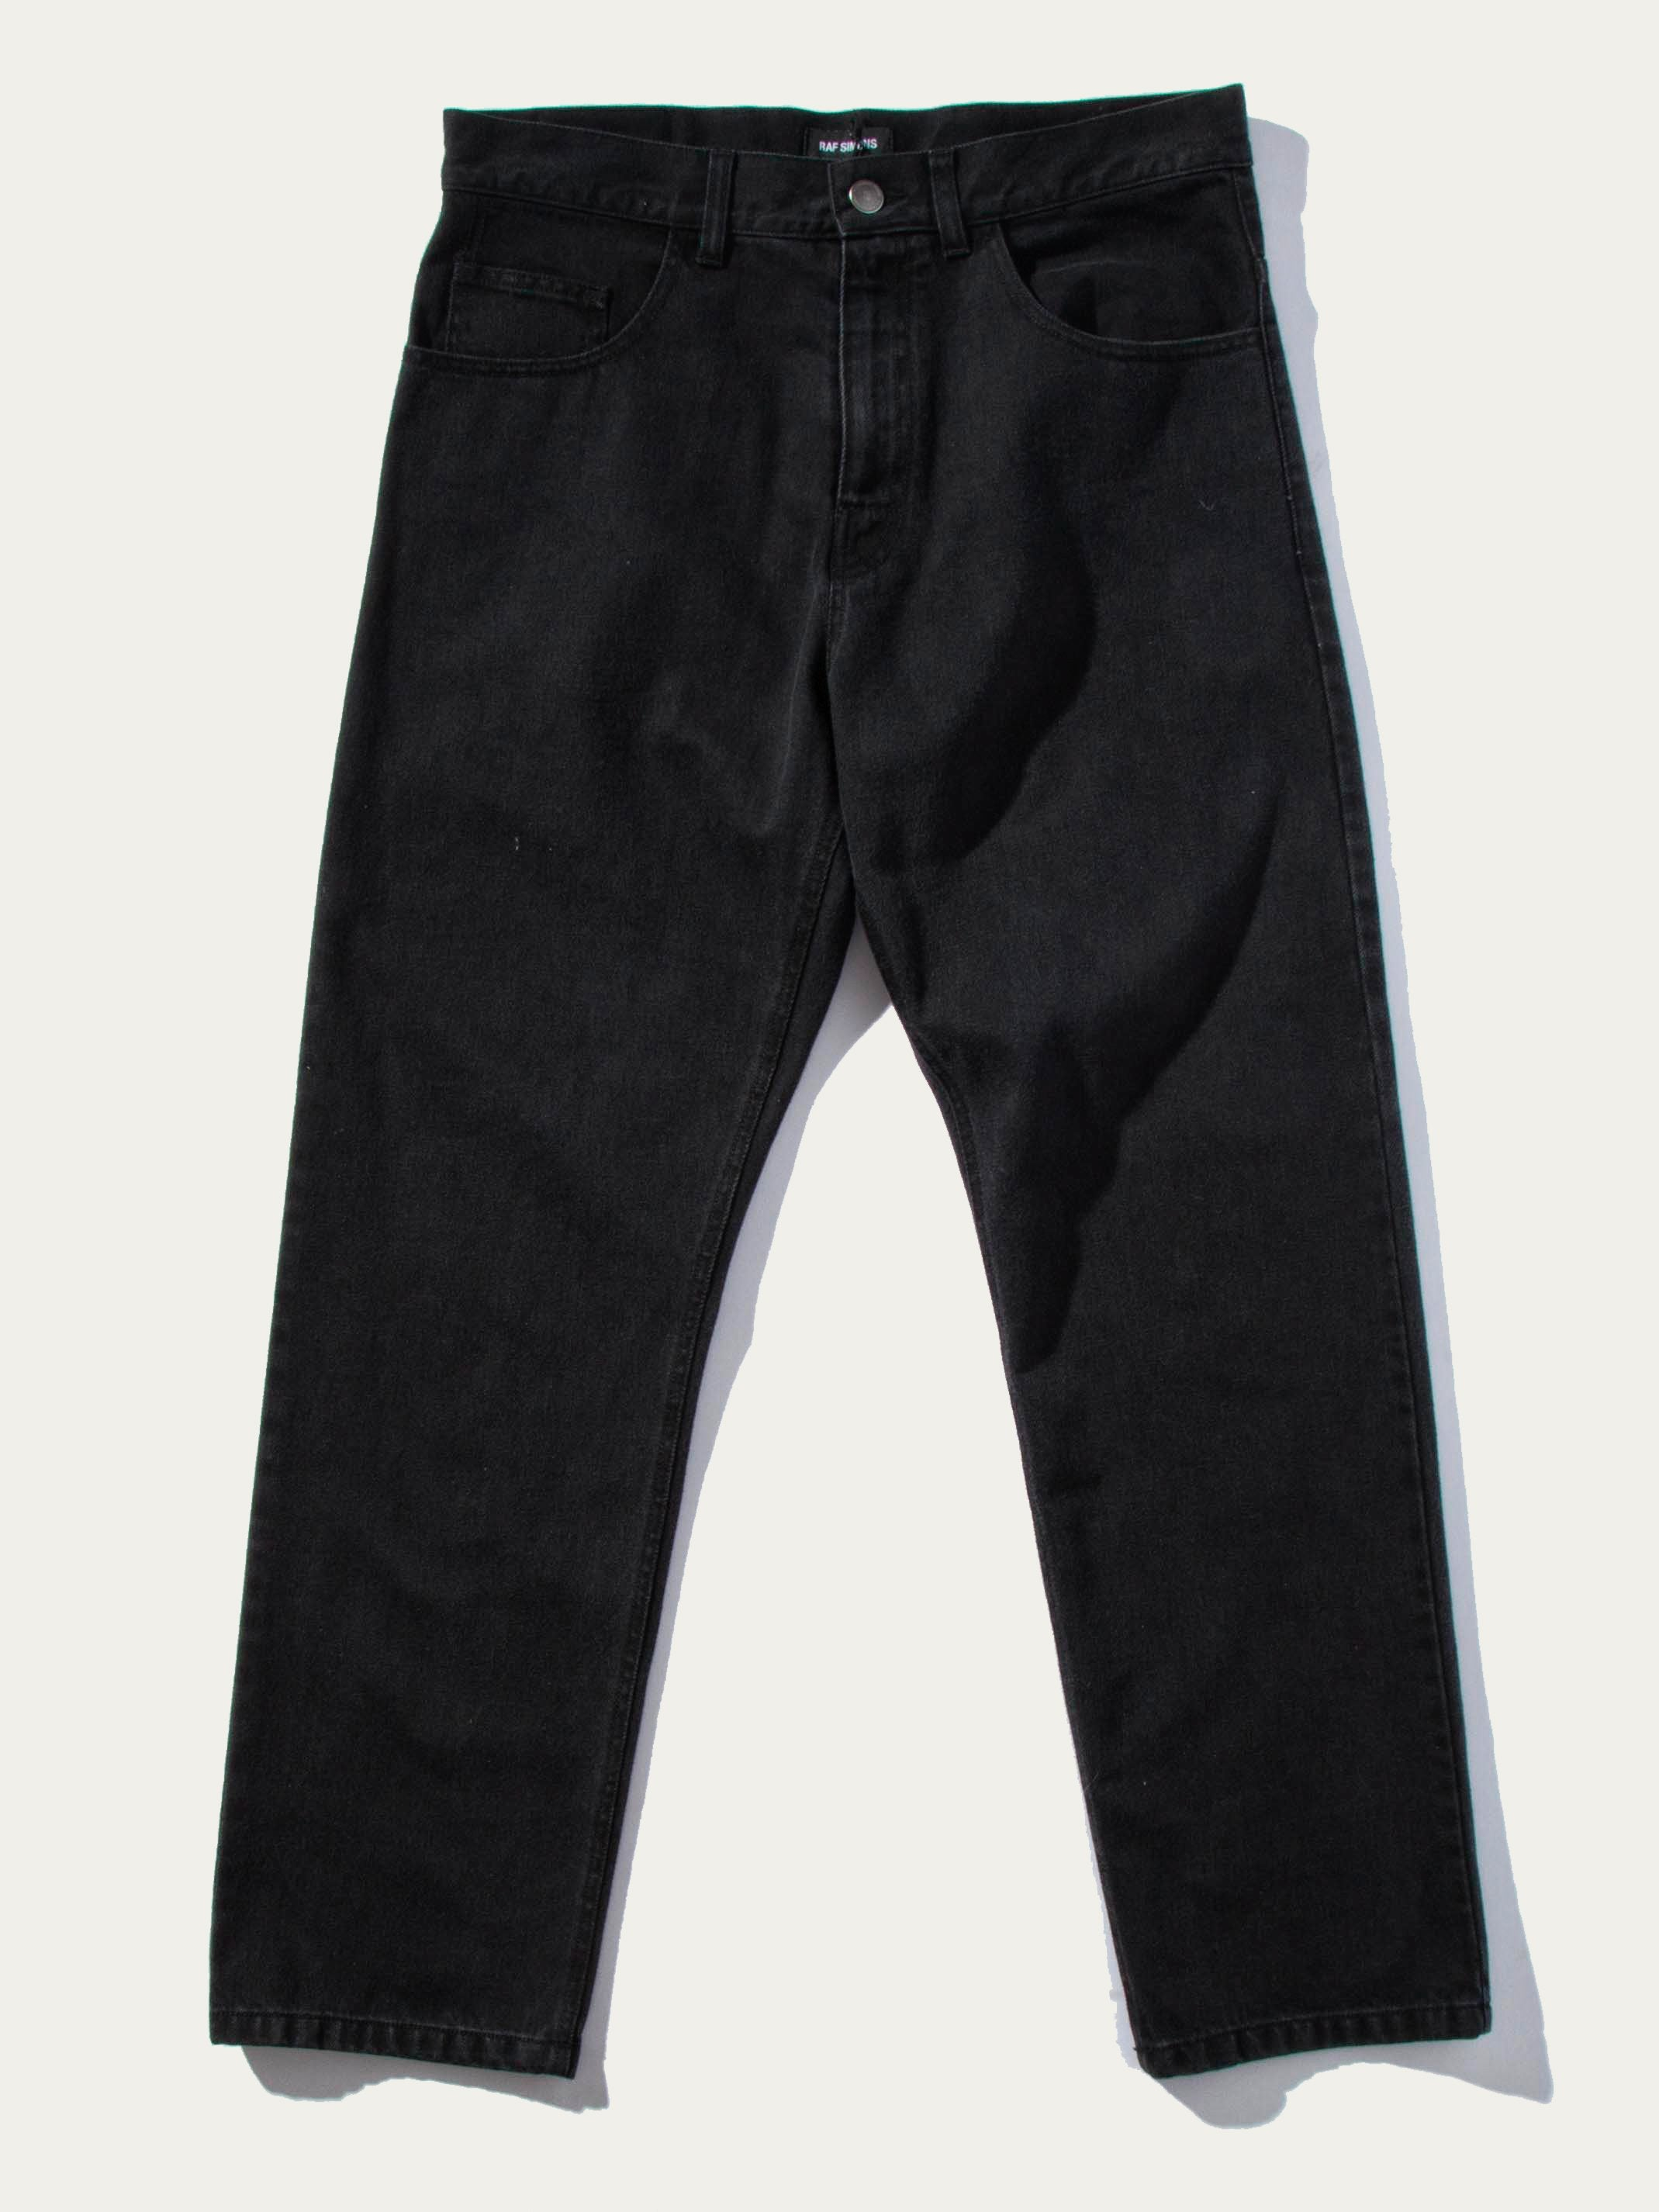 Black Low Crotch Jeans 1